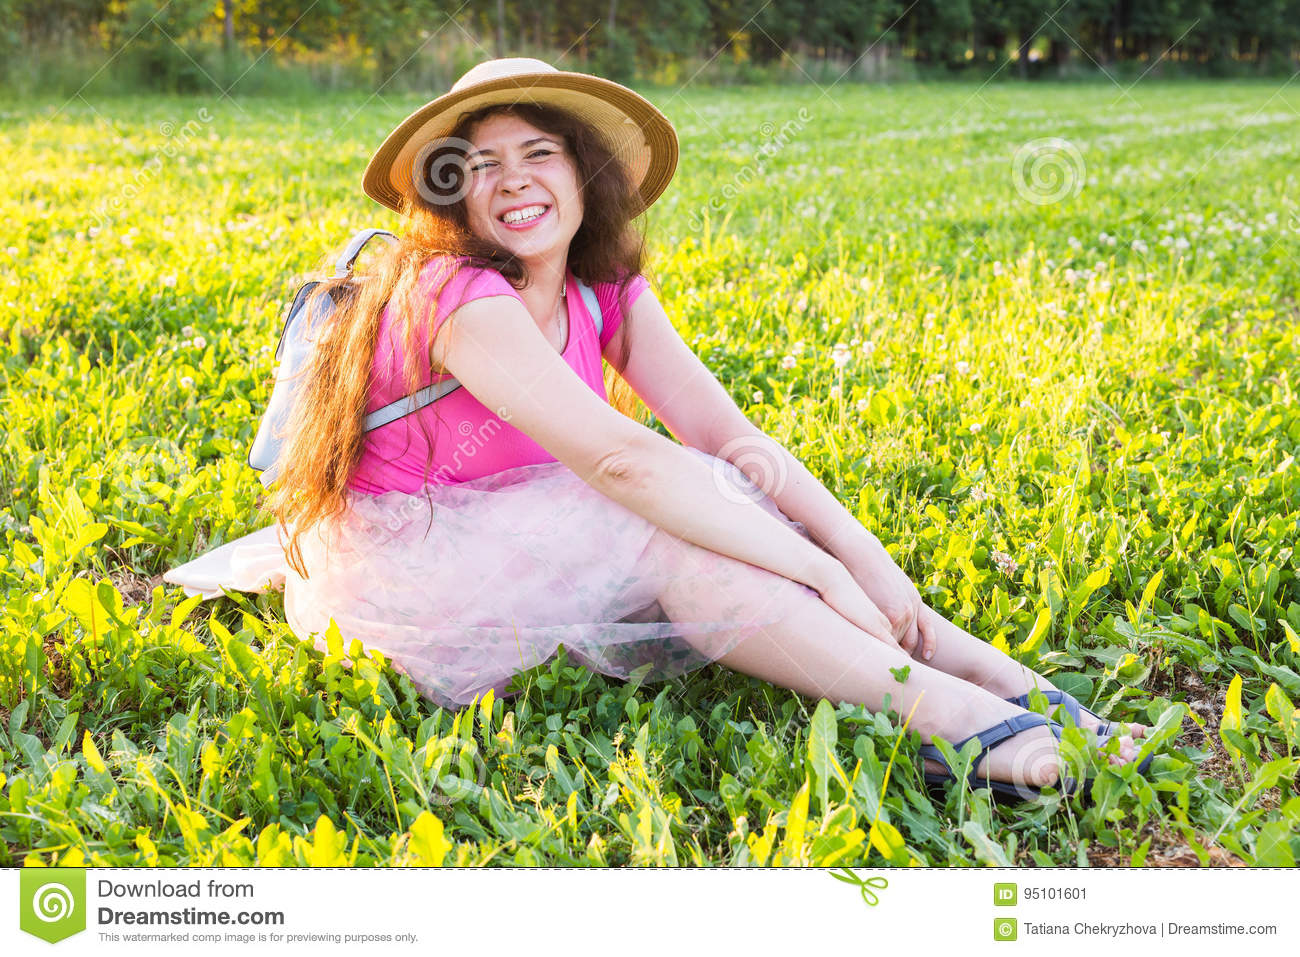 Royalty-Free Stock Photo. Download Beautiful Young Laughing Naughty Woman  ...